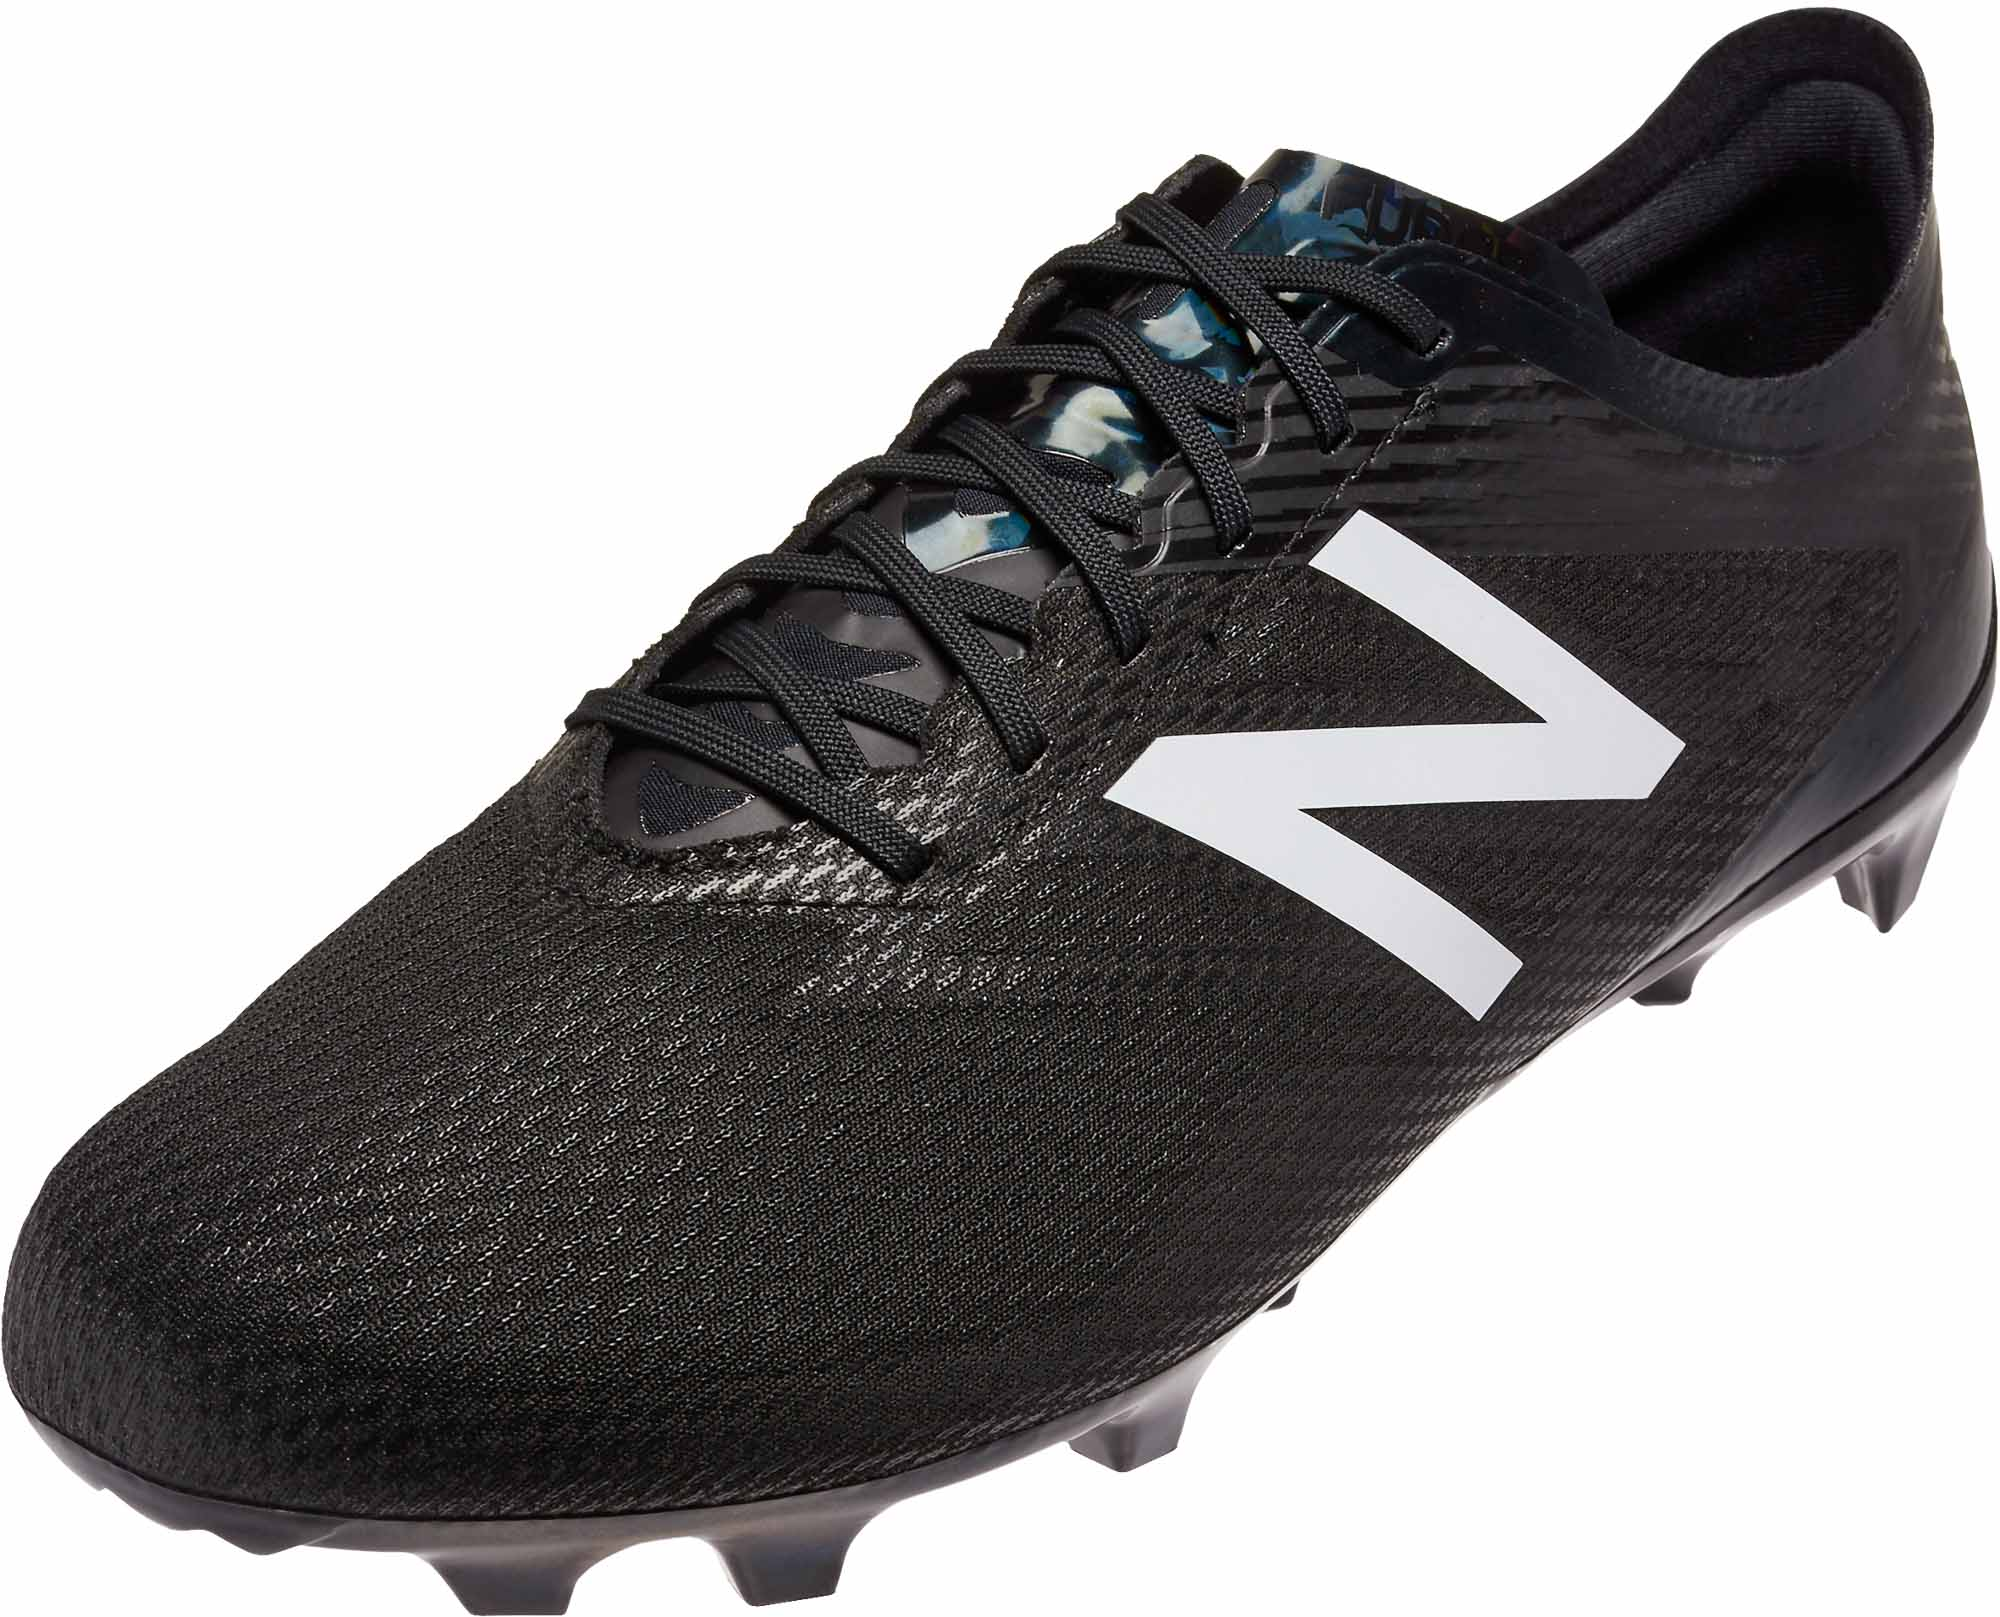 98ae8ba67d2 New Balance Furon 3.0 Pro FG - Black Soccer Cleats